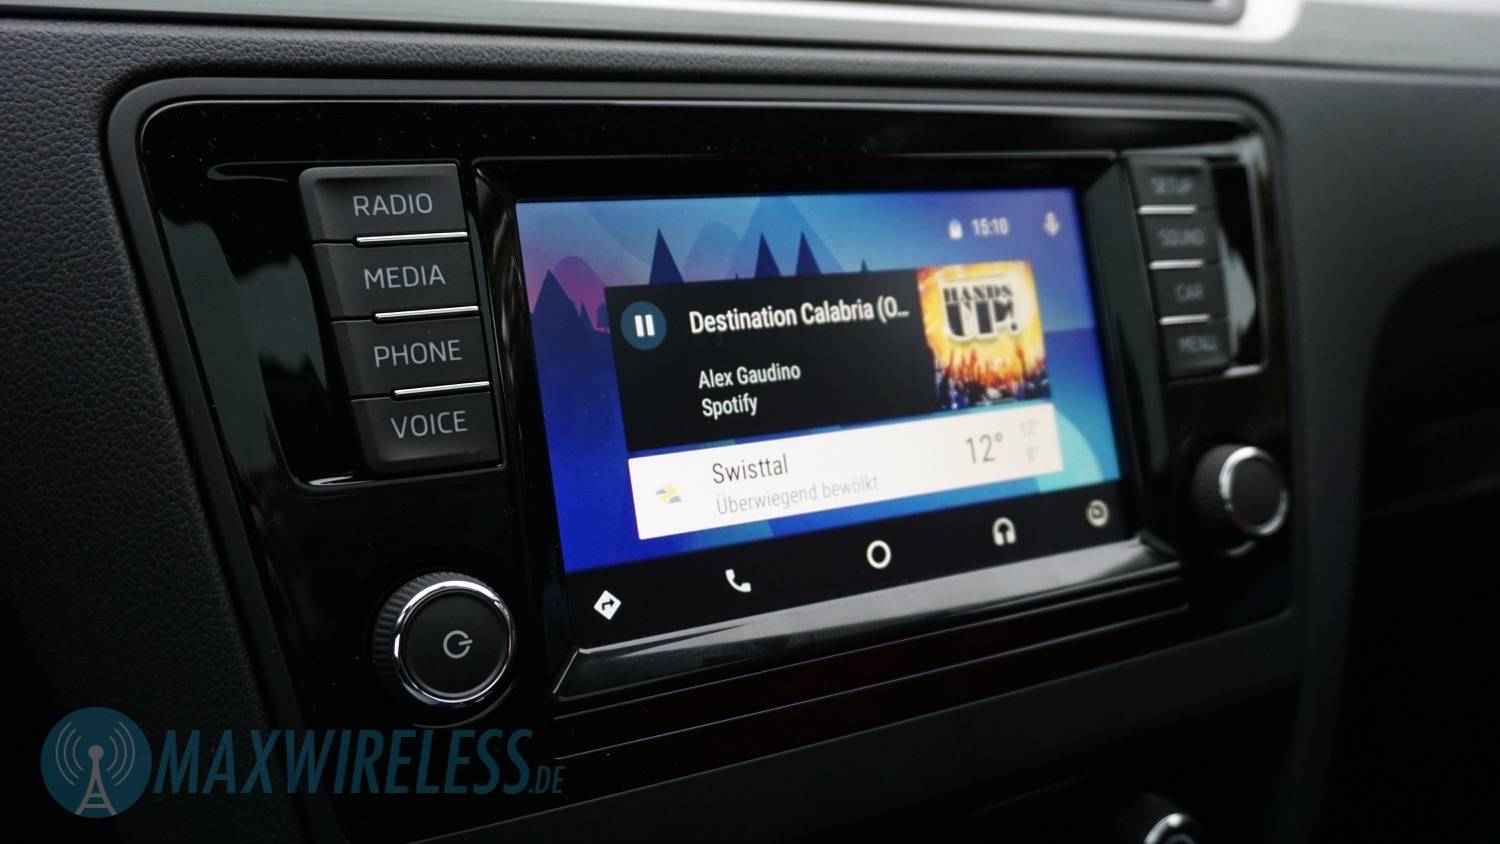 Test Skoda Smartlink Mit Apple Carplay Und Android Auto on tunein radio android